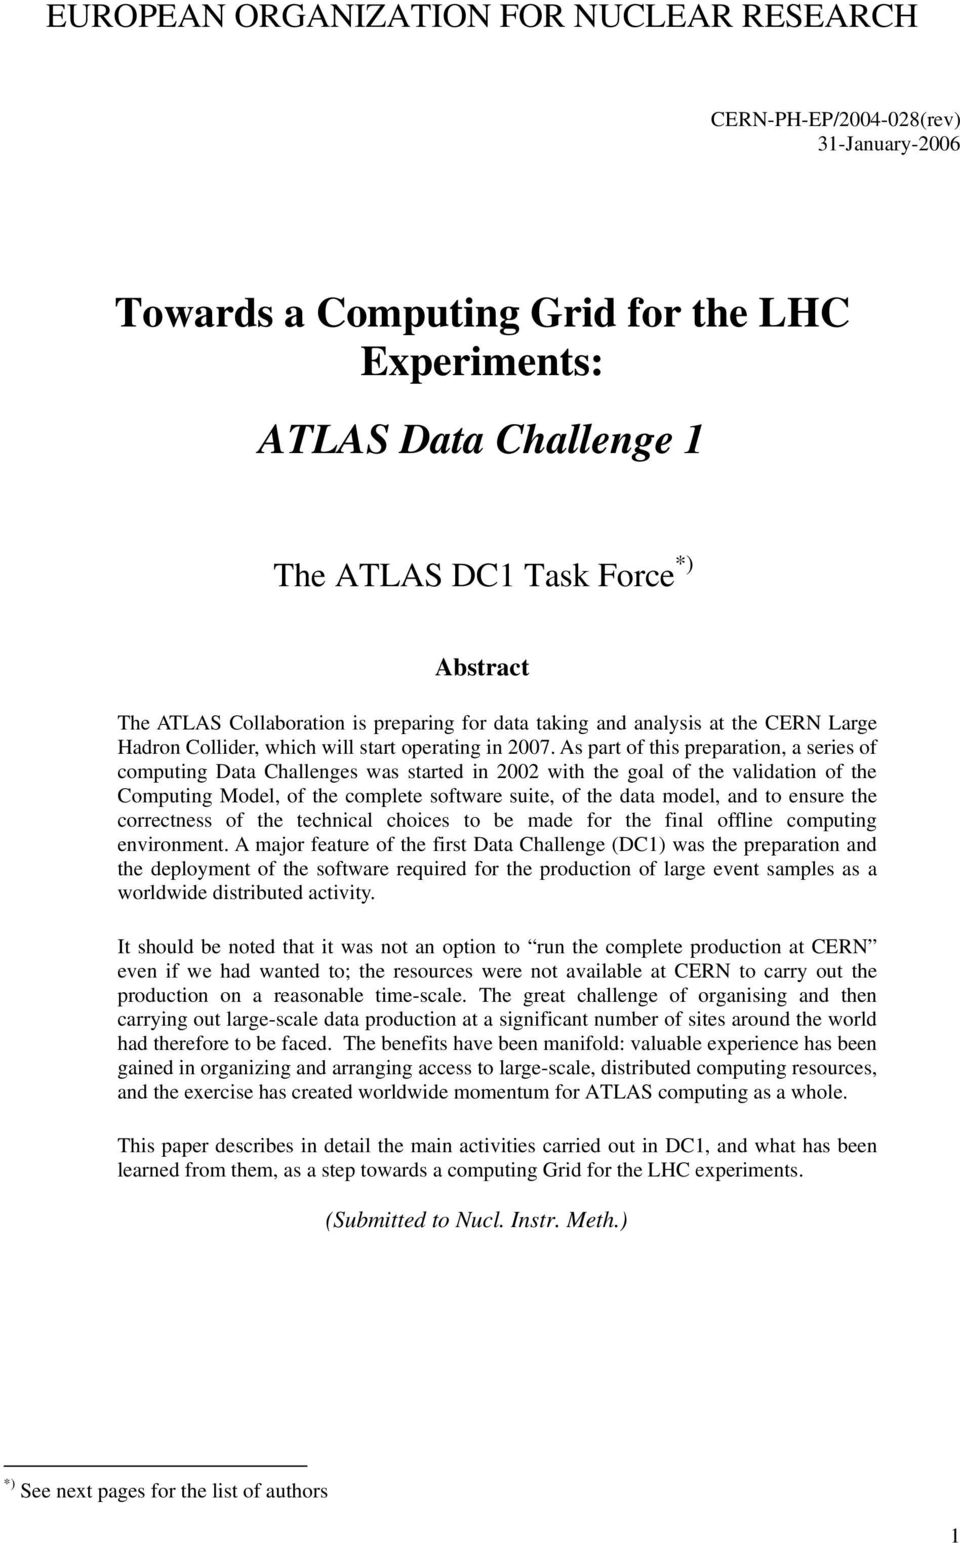 As part of this preparation, a series of computing Data Challenges was started in 2002 with the goal of the validation of the Computing Model, of the complete software suite, of the data model, and